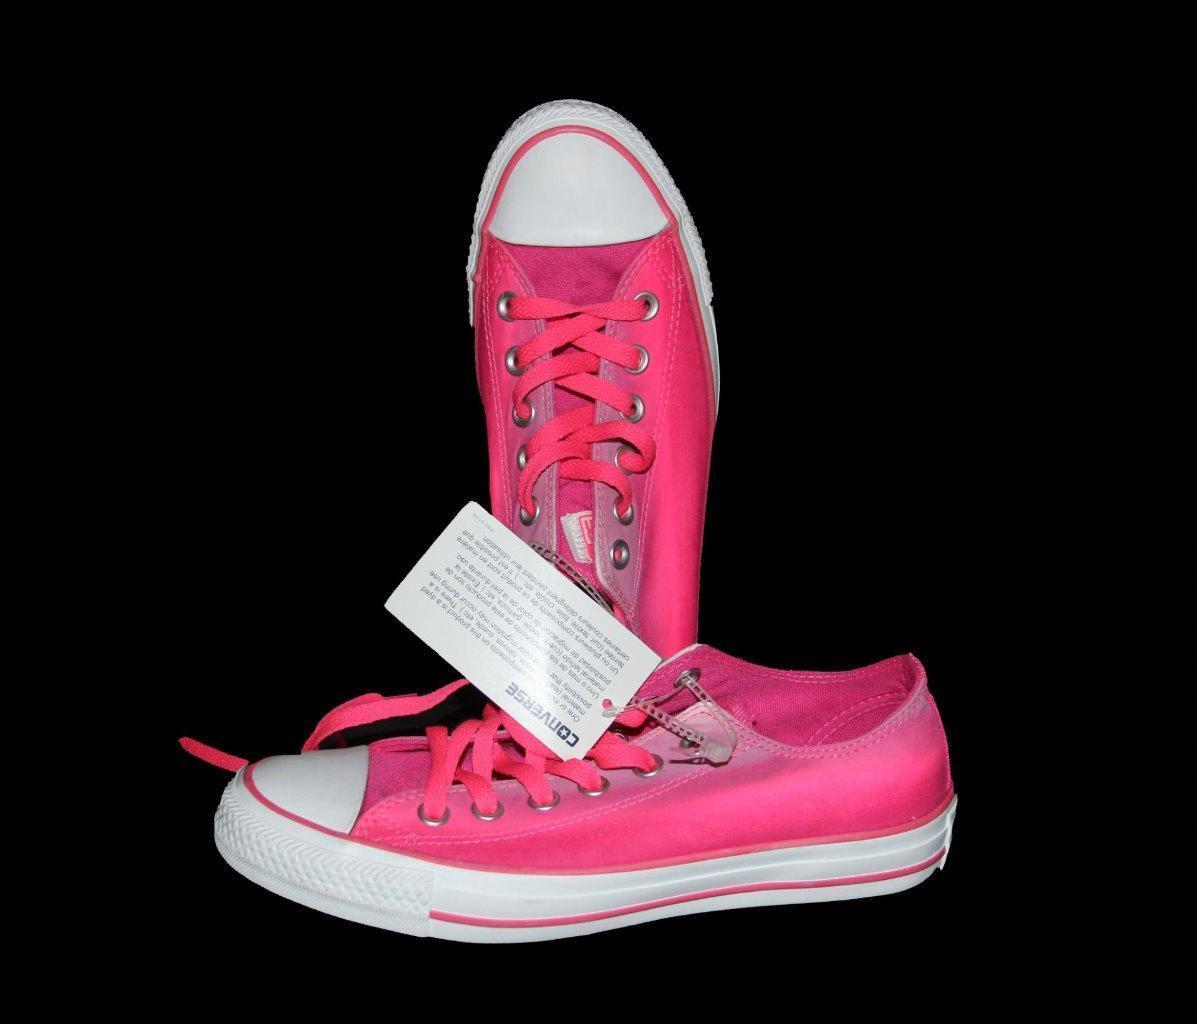 Converse Hot Neon Pink Lavender Tie Dye and 50 similar items 474b9e54d